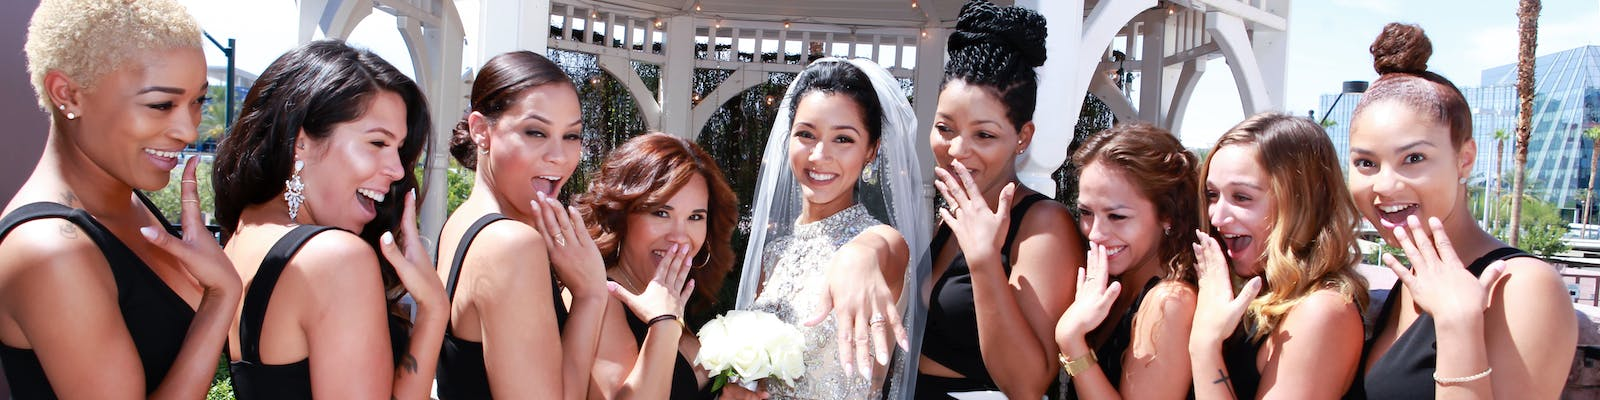 Bride shows off her ring as her bridesmaids look in awe